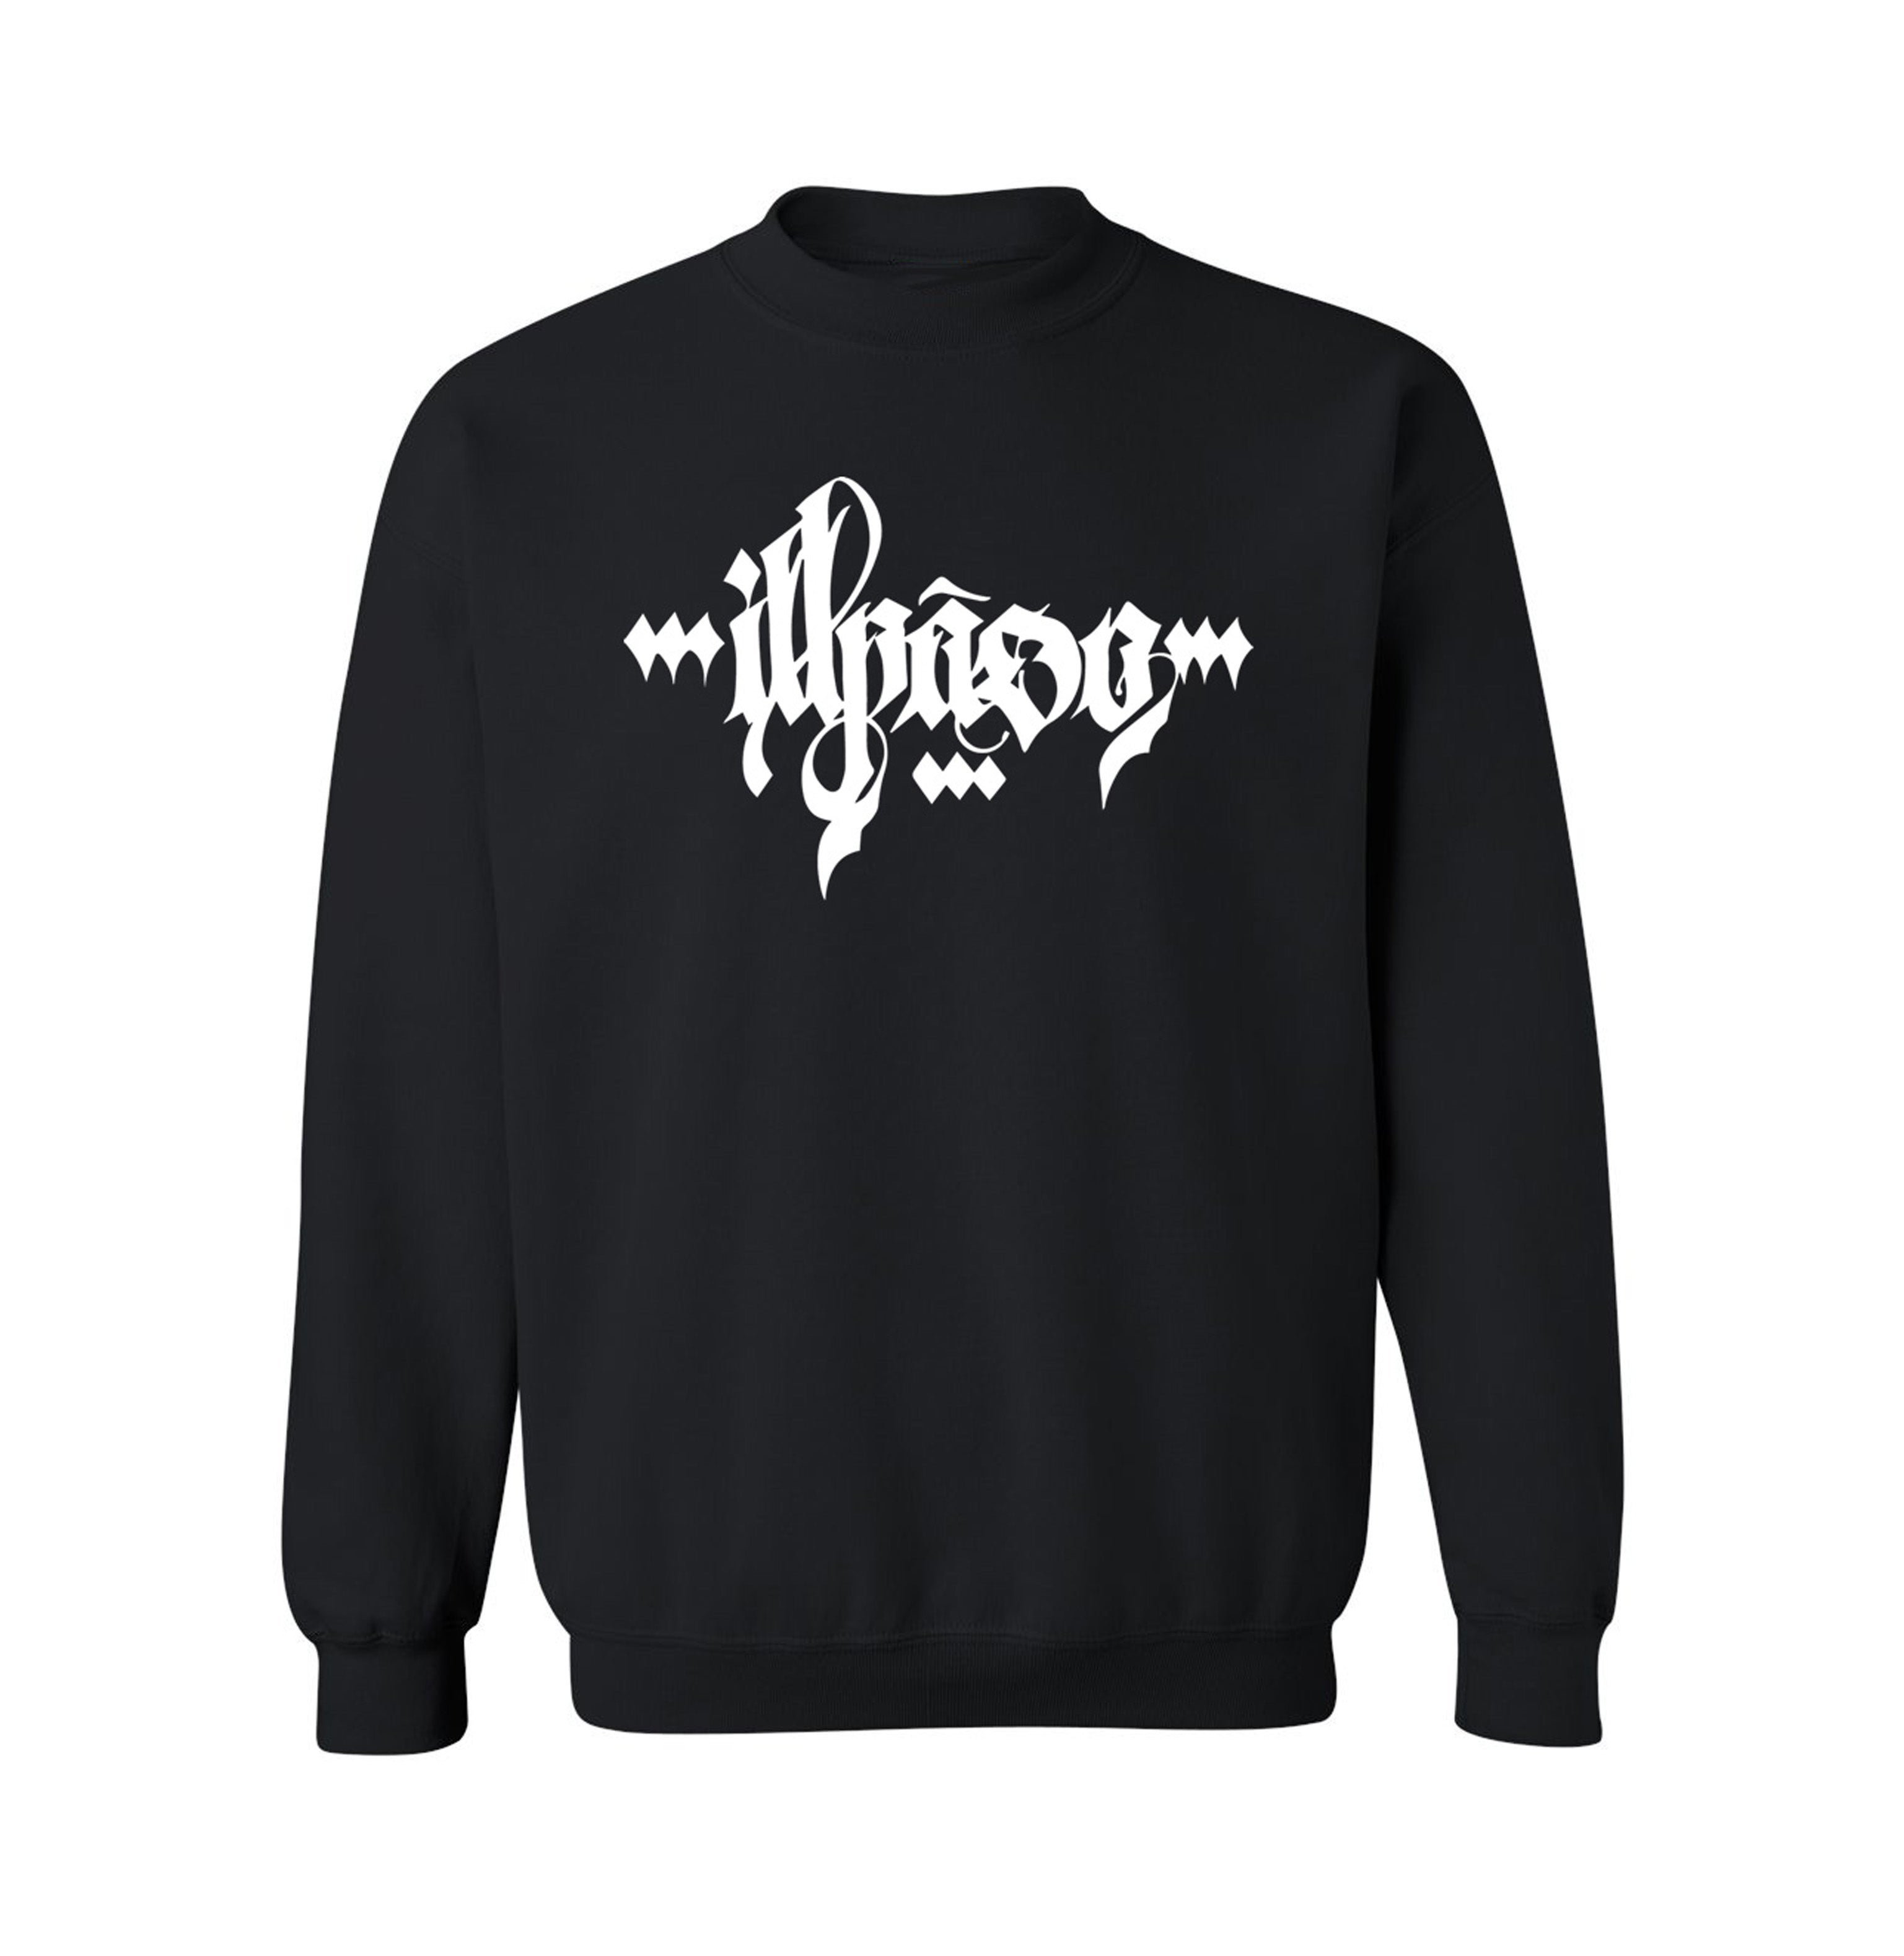 """Calligraphy 1"" Adult Uni-Sex Crew Neck Sweatshirt (Black) by Owenuma"